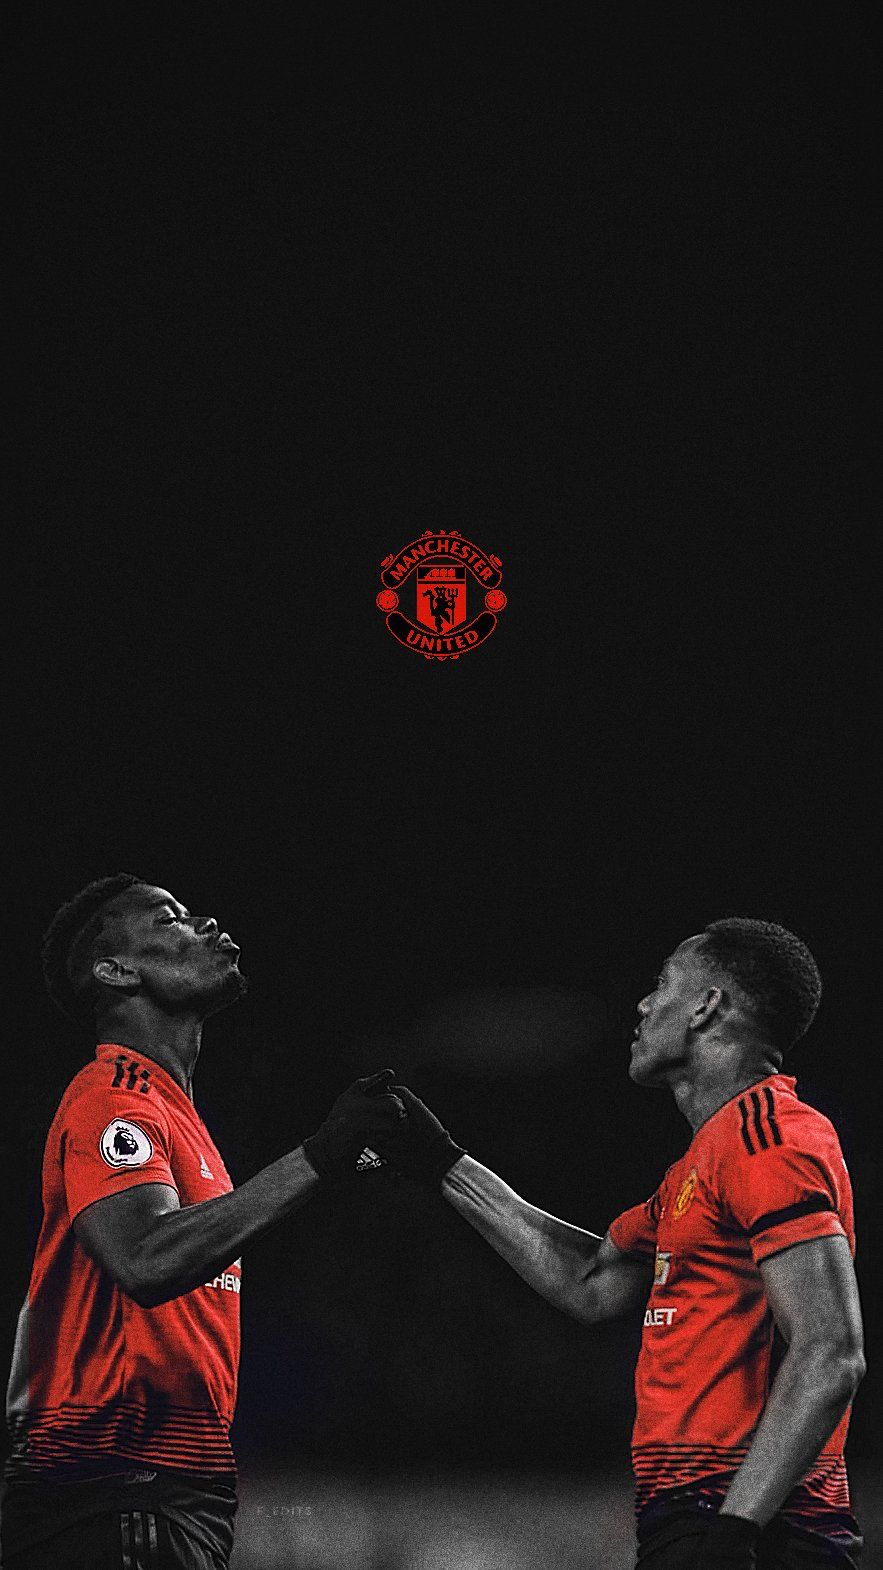 French Connection Manchester United Wallpaper Manchester United Soccer Manchester United Players